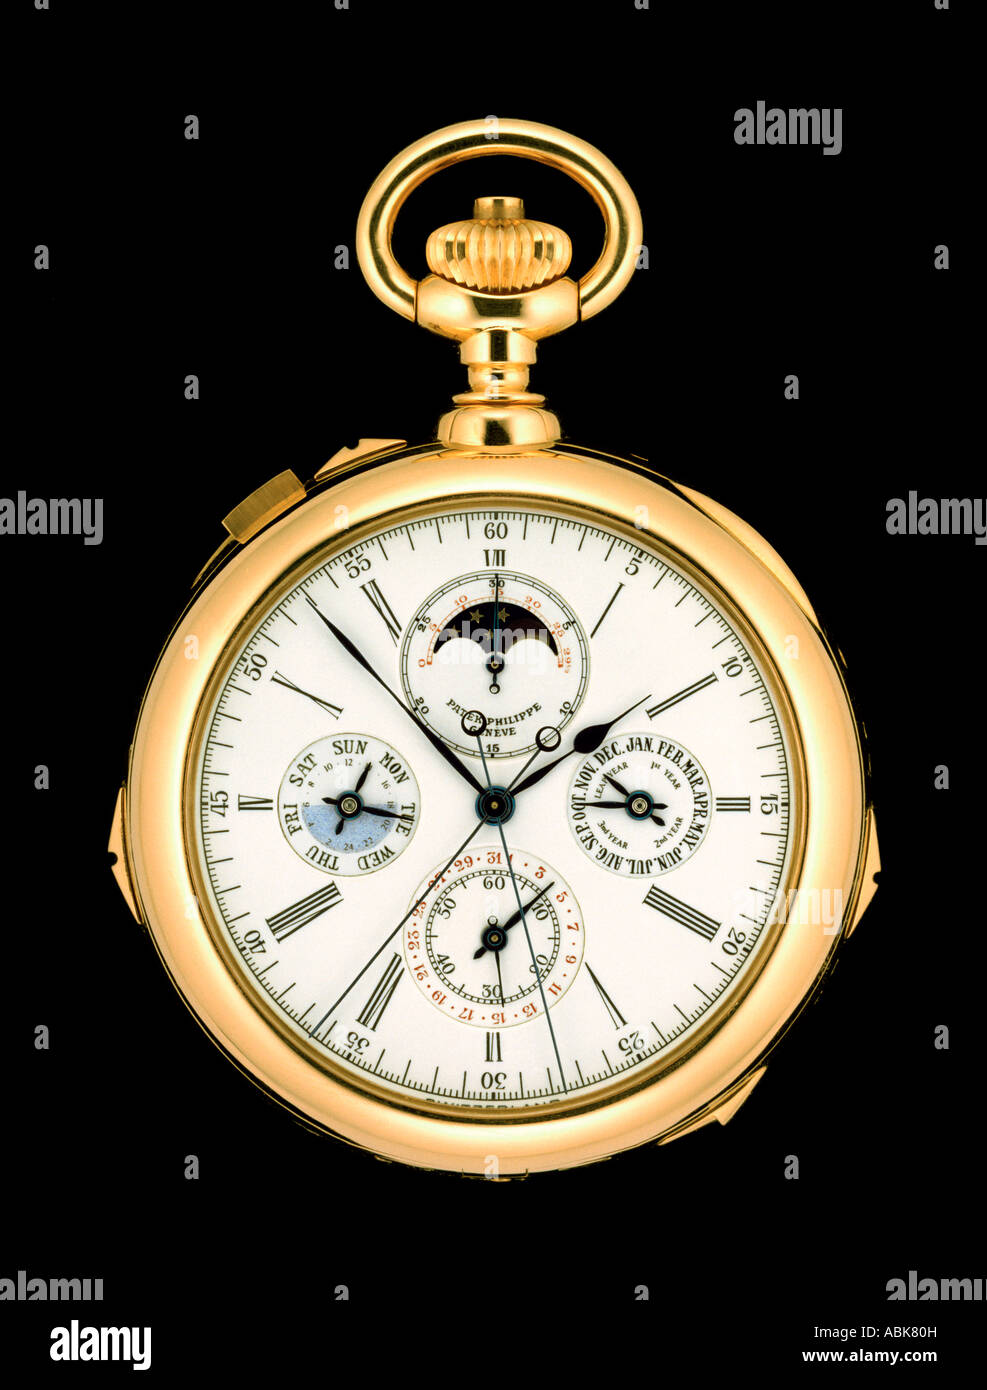 Patek Philippe 'Grand Complication' pocket watch. - Stock Image